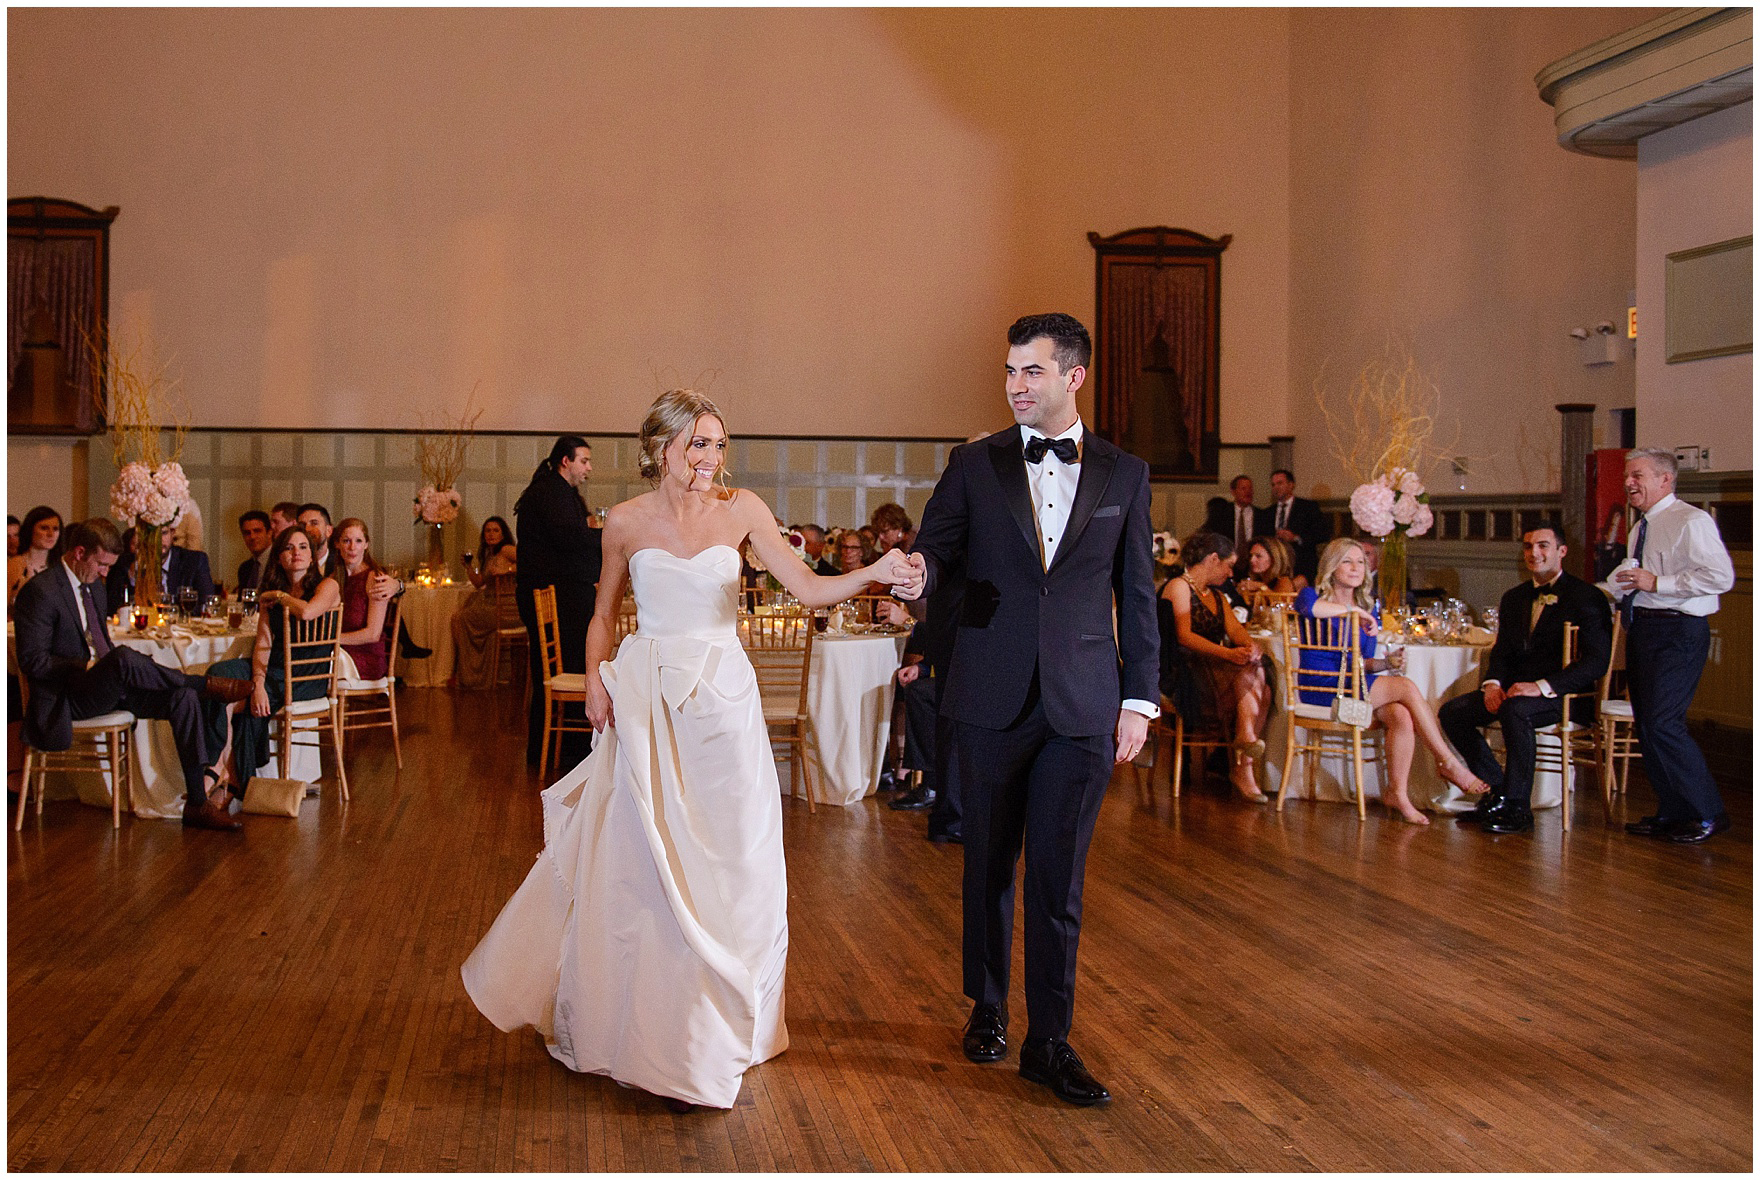 The bride and groom walk onto the dance floor for their first dance during a St. Clement Germania Place Chicago wedding.